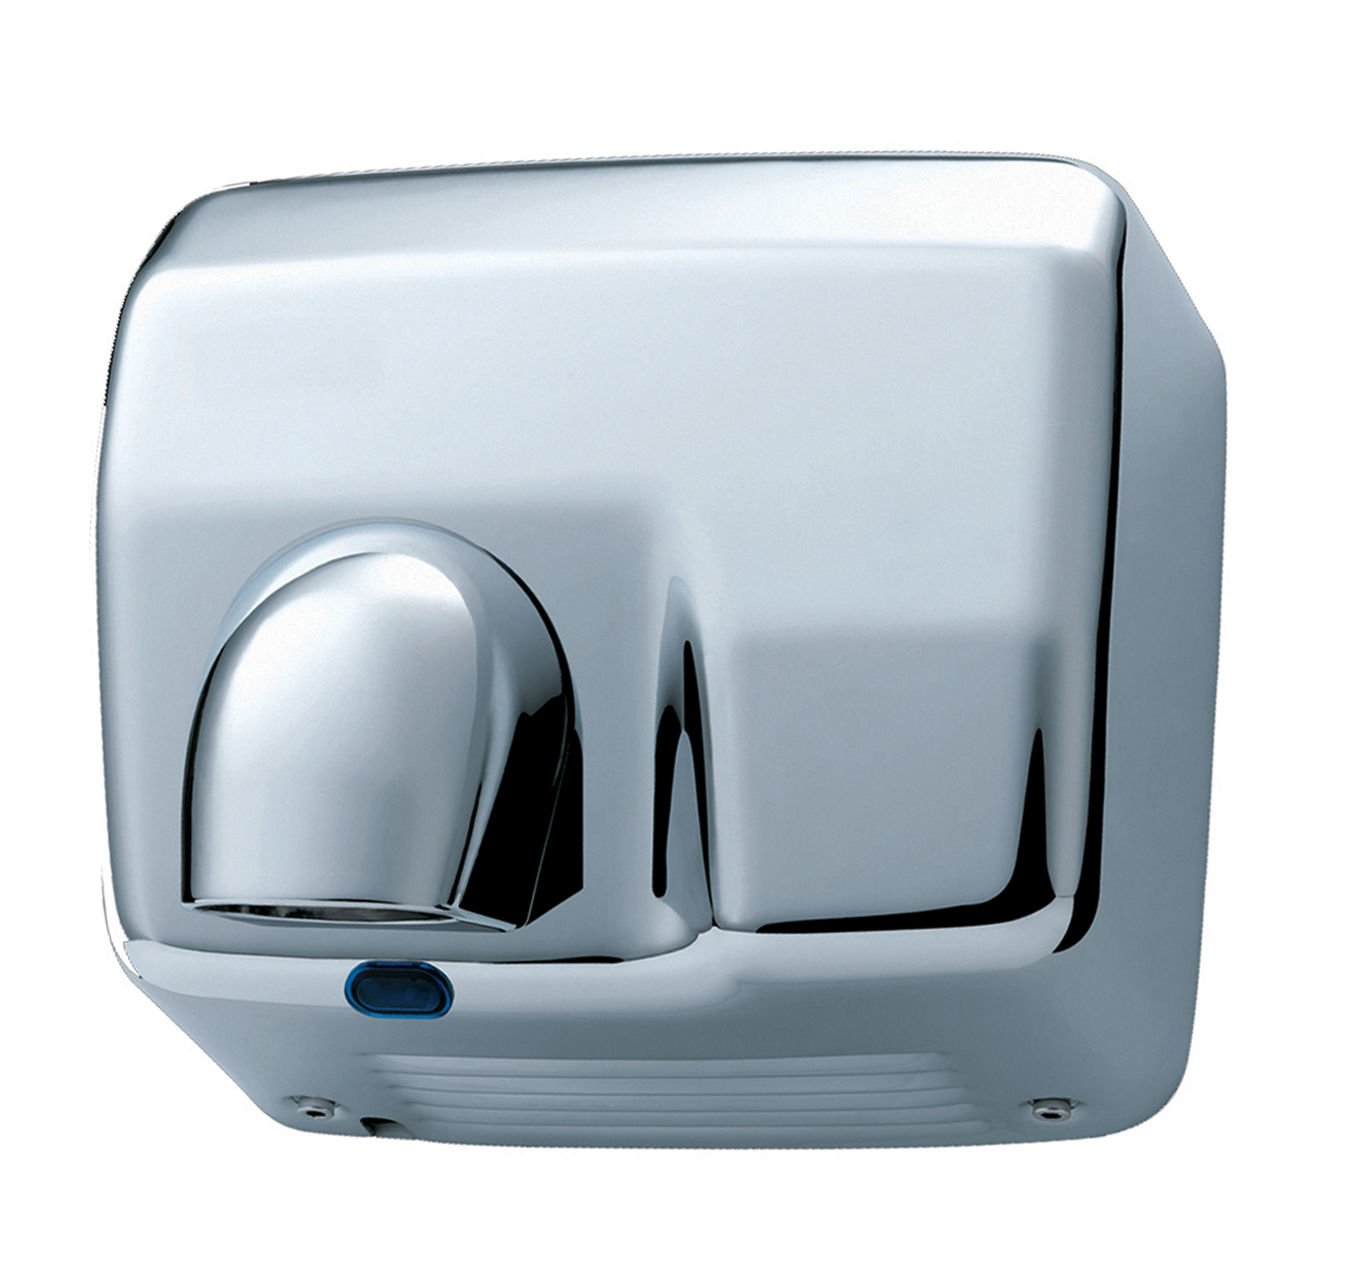 2500 Watts Electric Nozzle Hand And Face Dryer - Heavy Duty Automatic Drier - Chrome Washroom Hub